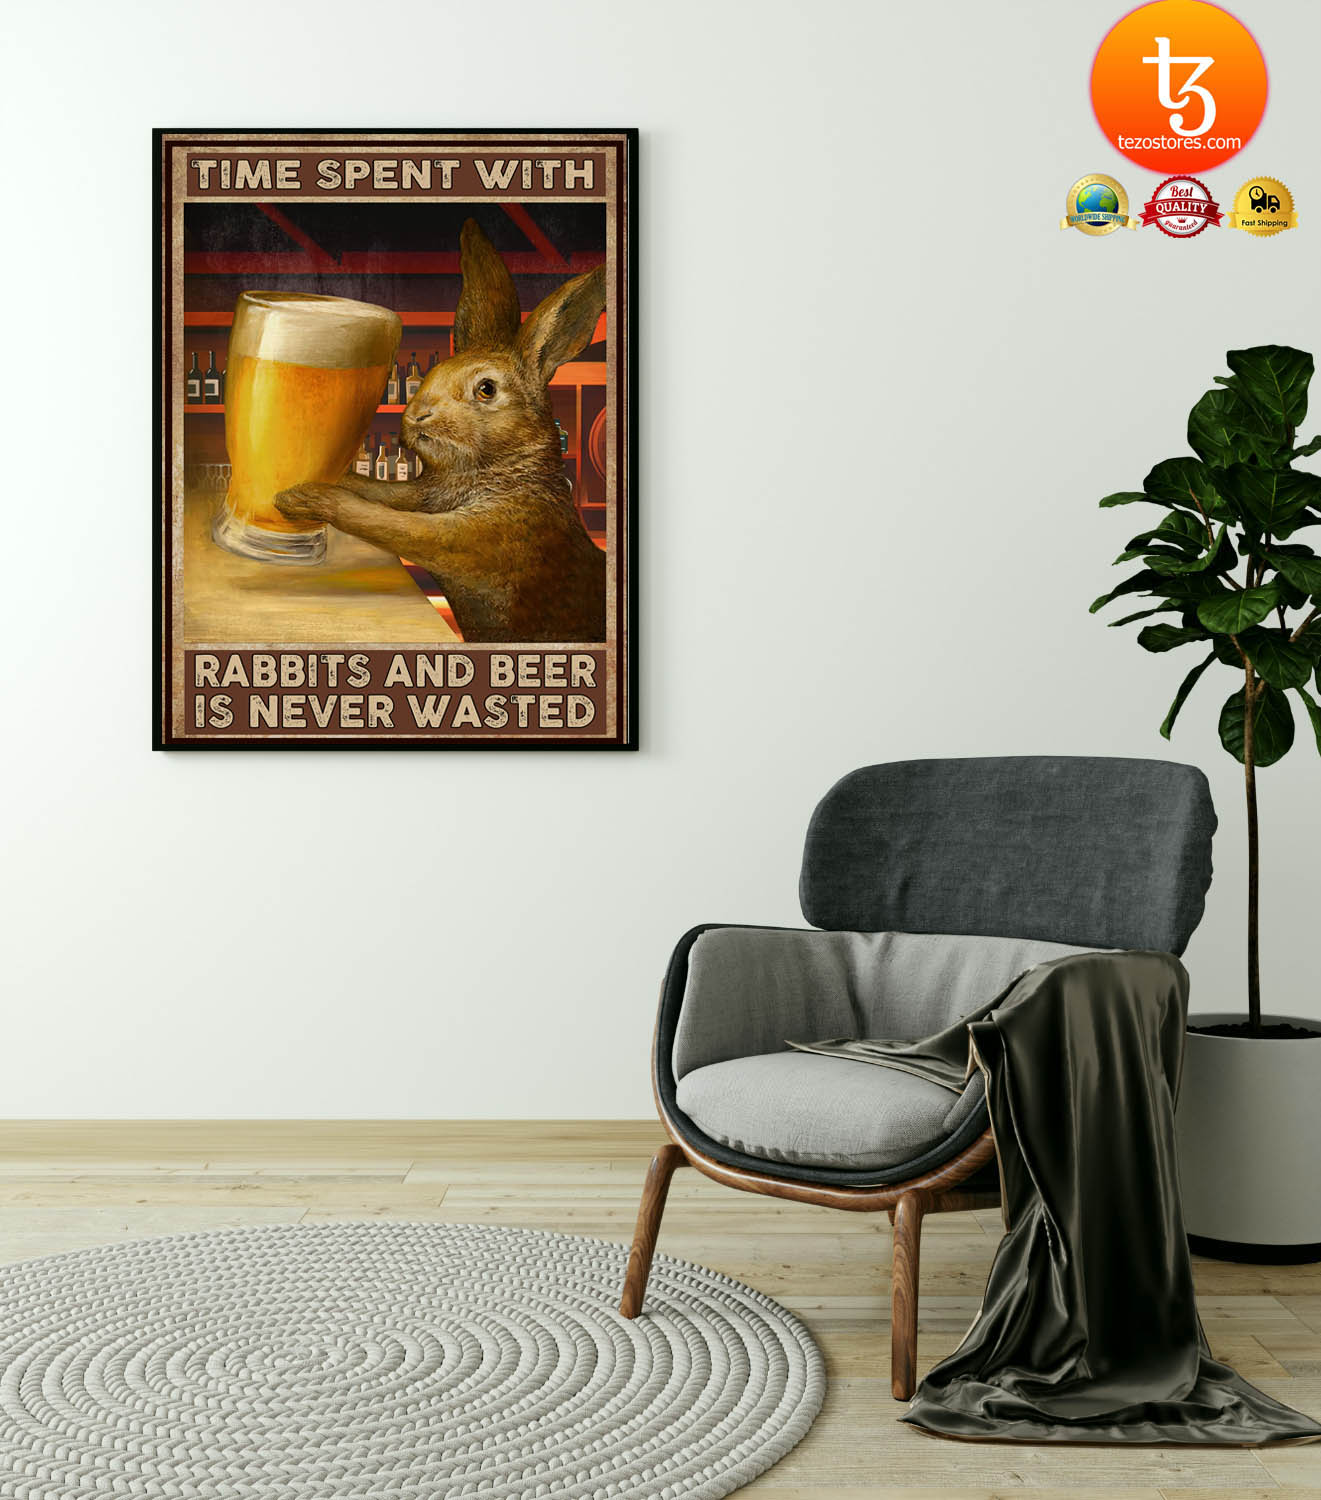 Time spent with rabbits and beer is never wasted poster 23